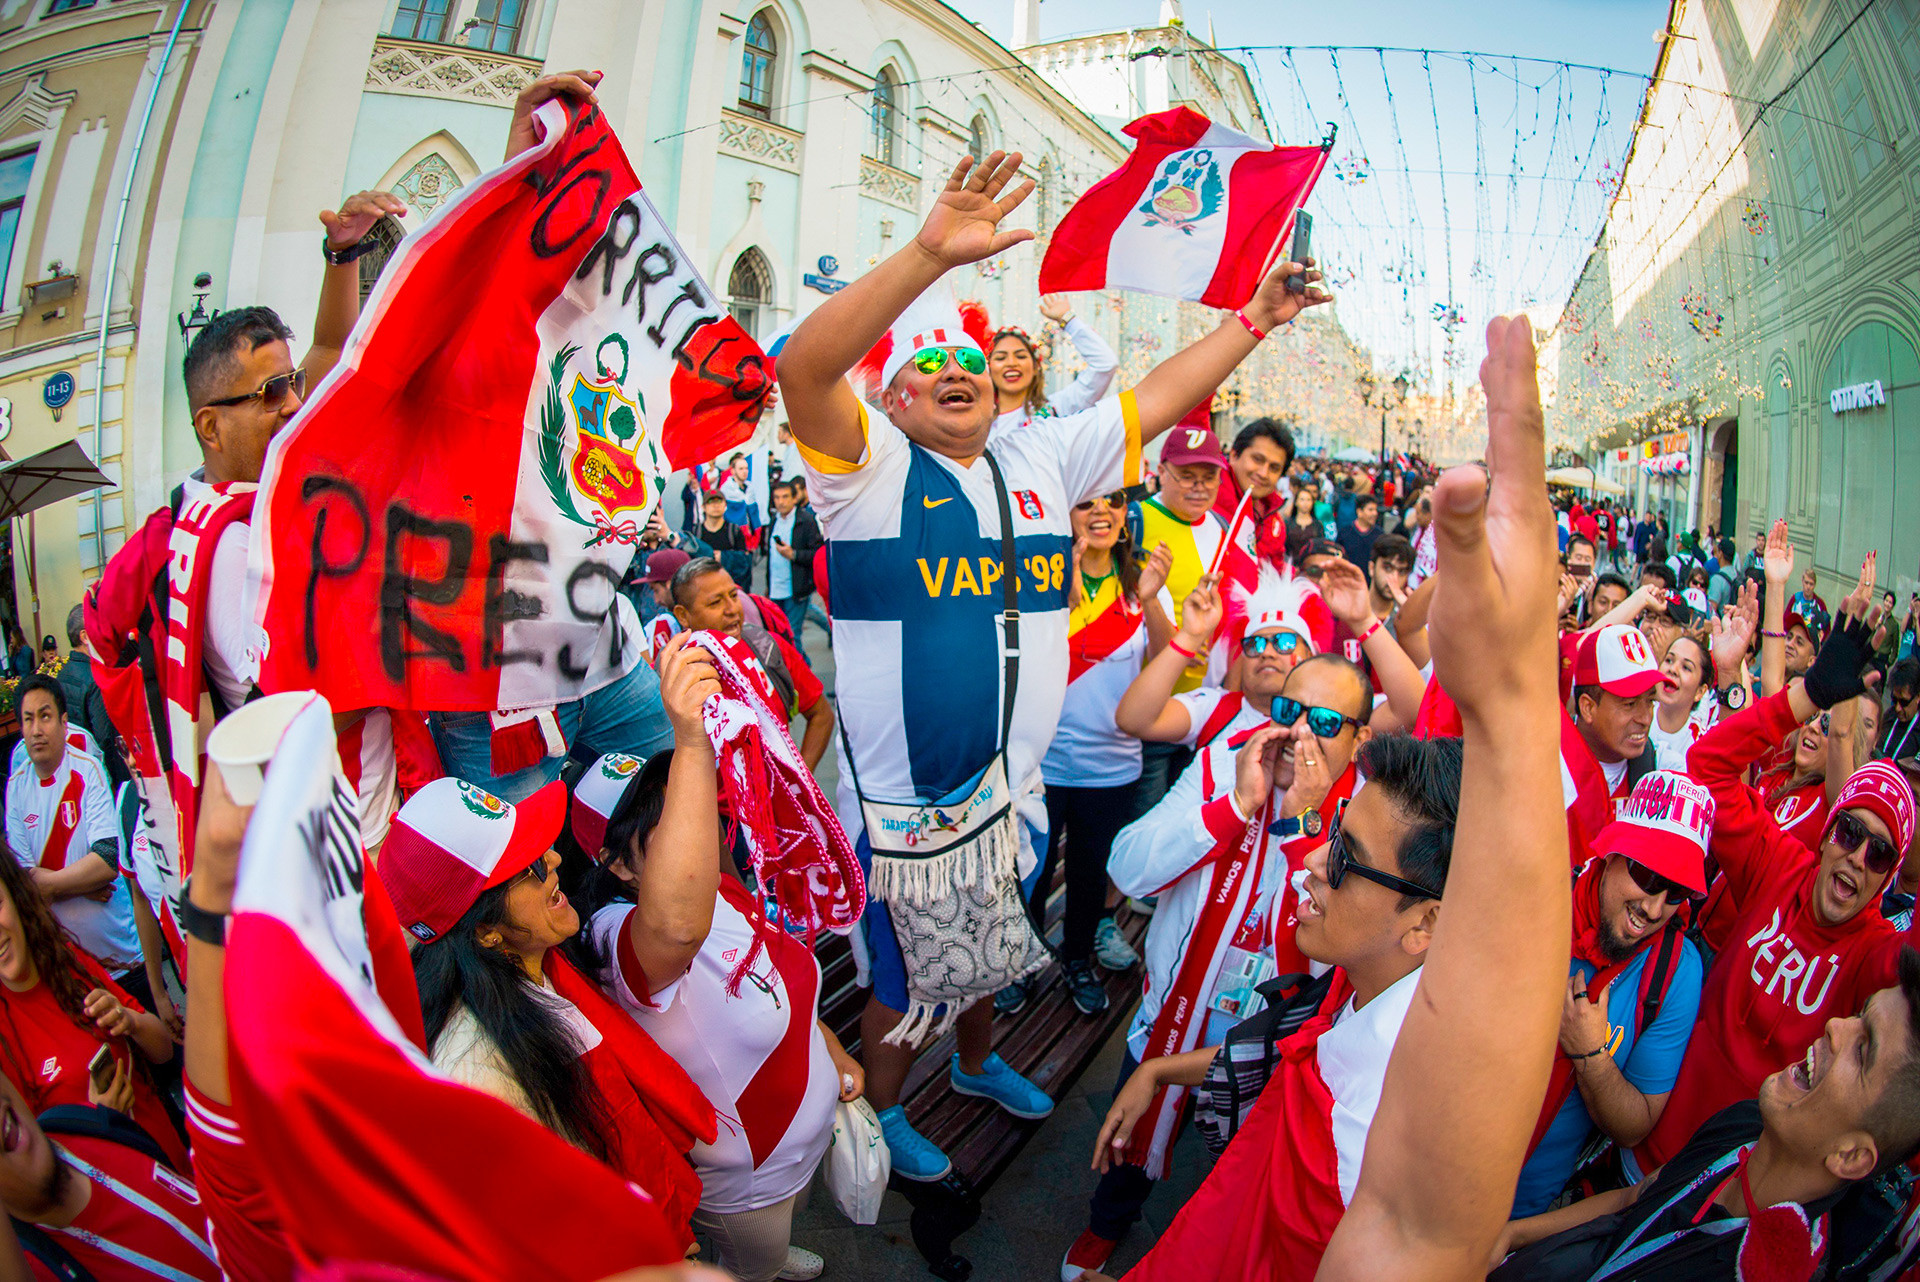 The Peruvians are in fine voice ahead of their first World Cup Finals since 1982. They'll be looking to shrug off the threat of France, Denmark, and Australia.